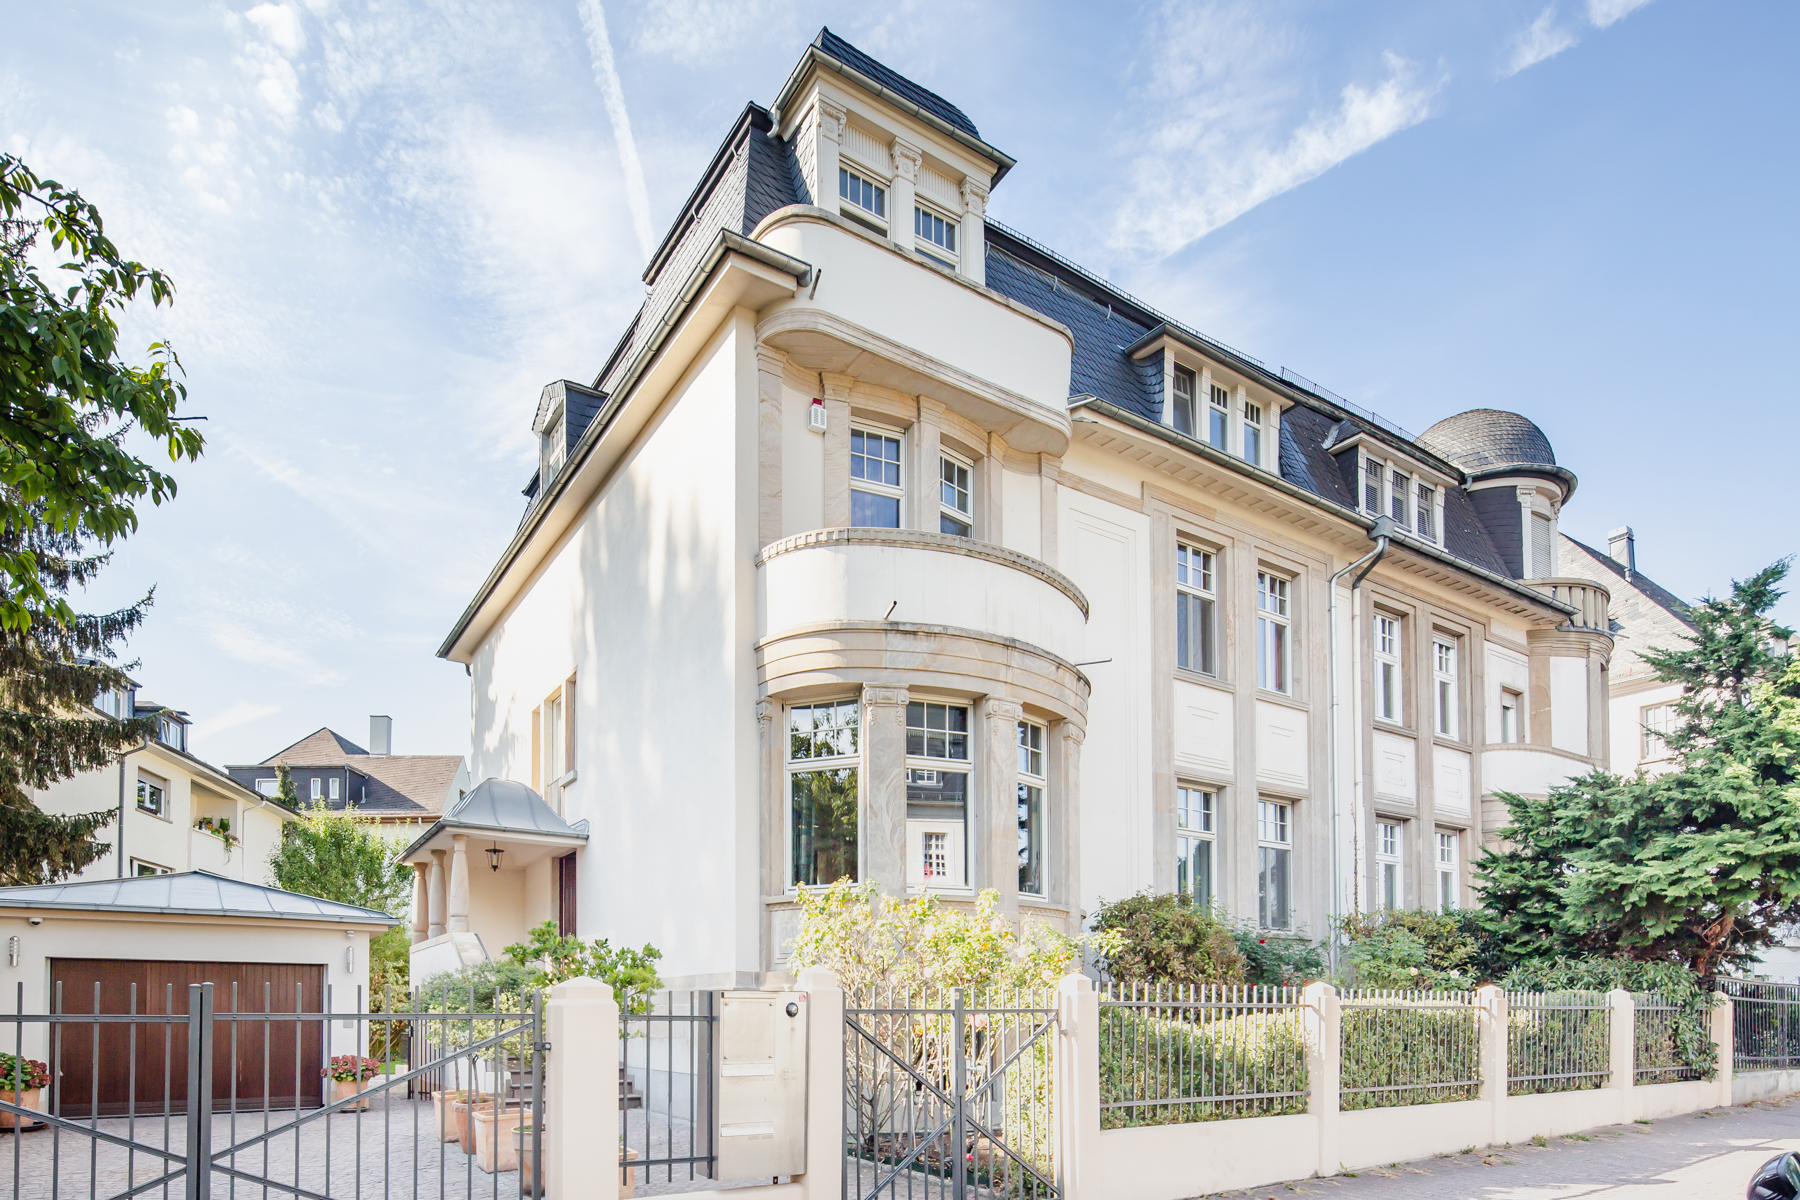 Townhouse for Sale at Charming, carefully refurbished home with the utmost in modern amenities Frankfurt, Hessen 60487 Germany